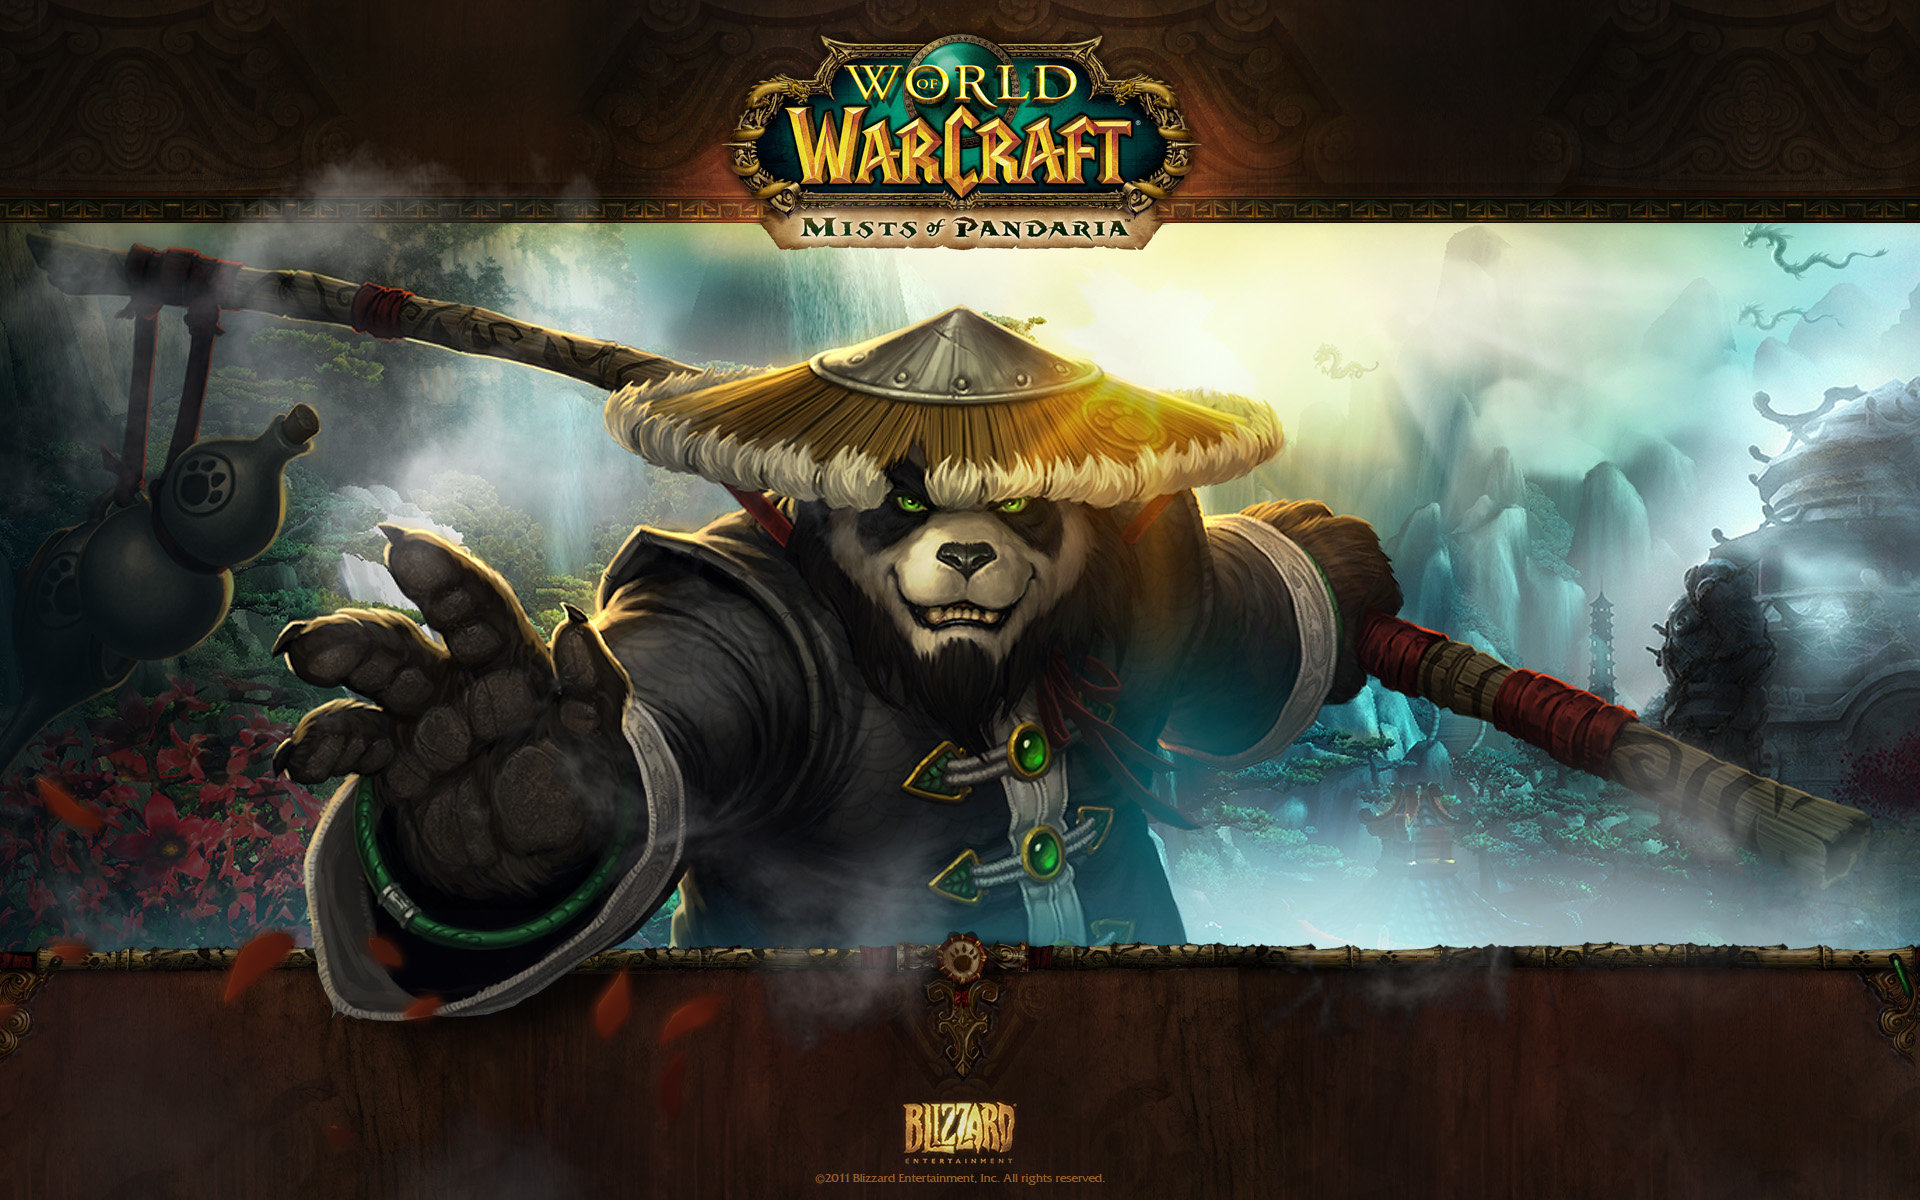 Awesome World Of Warcraft: Mists Of Pandaria free background ID:105636 for hd 1920x1200 PC